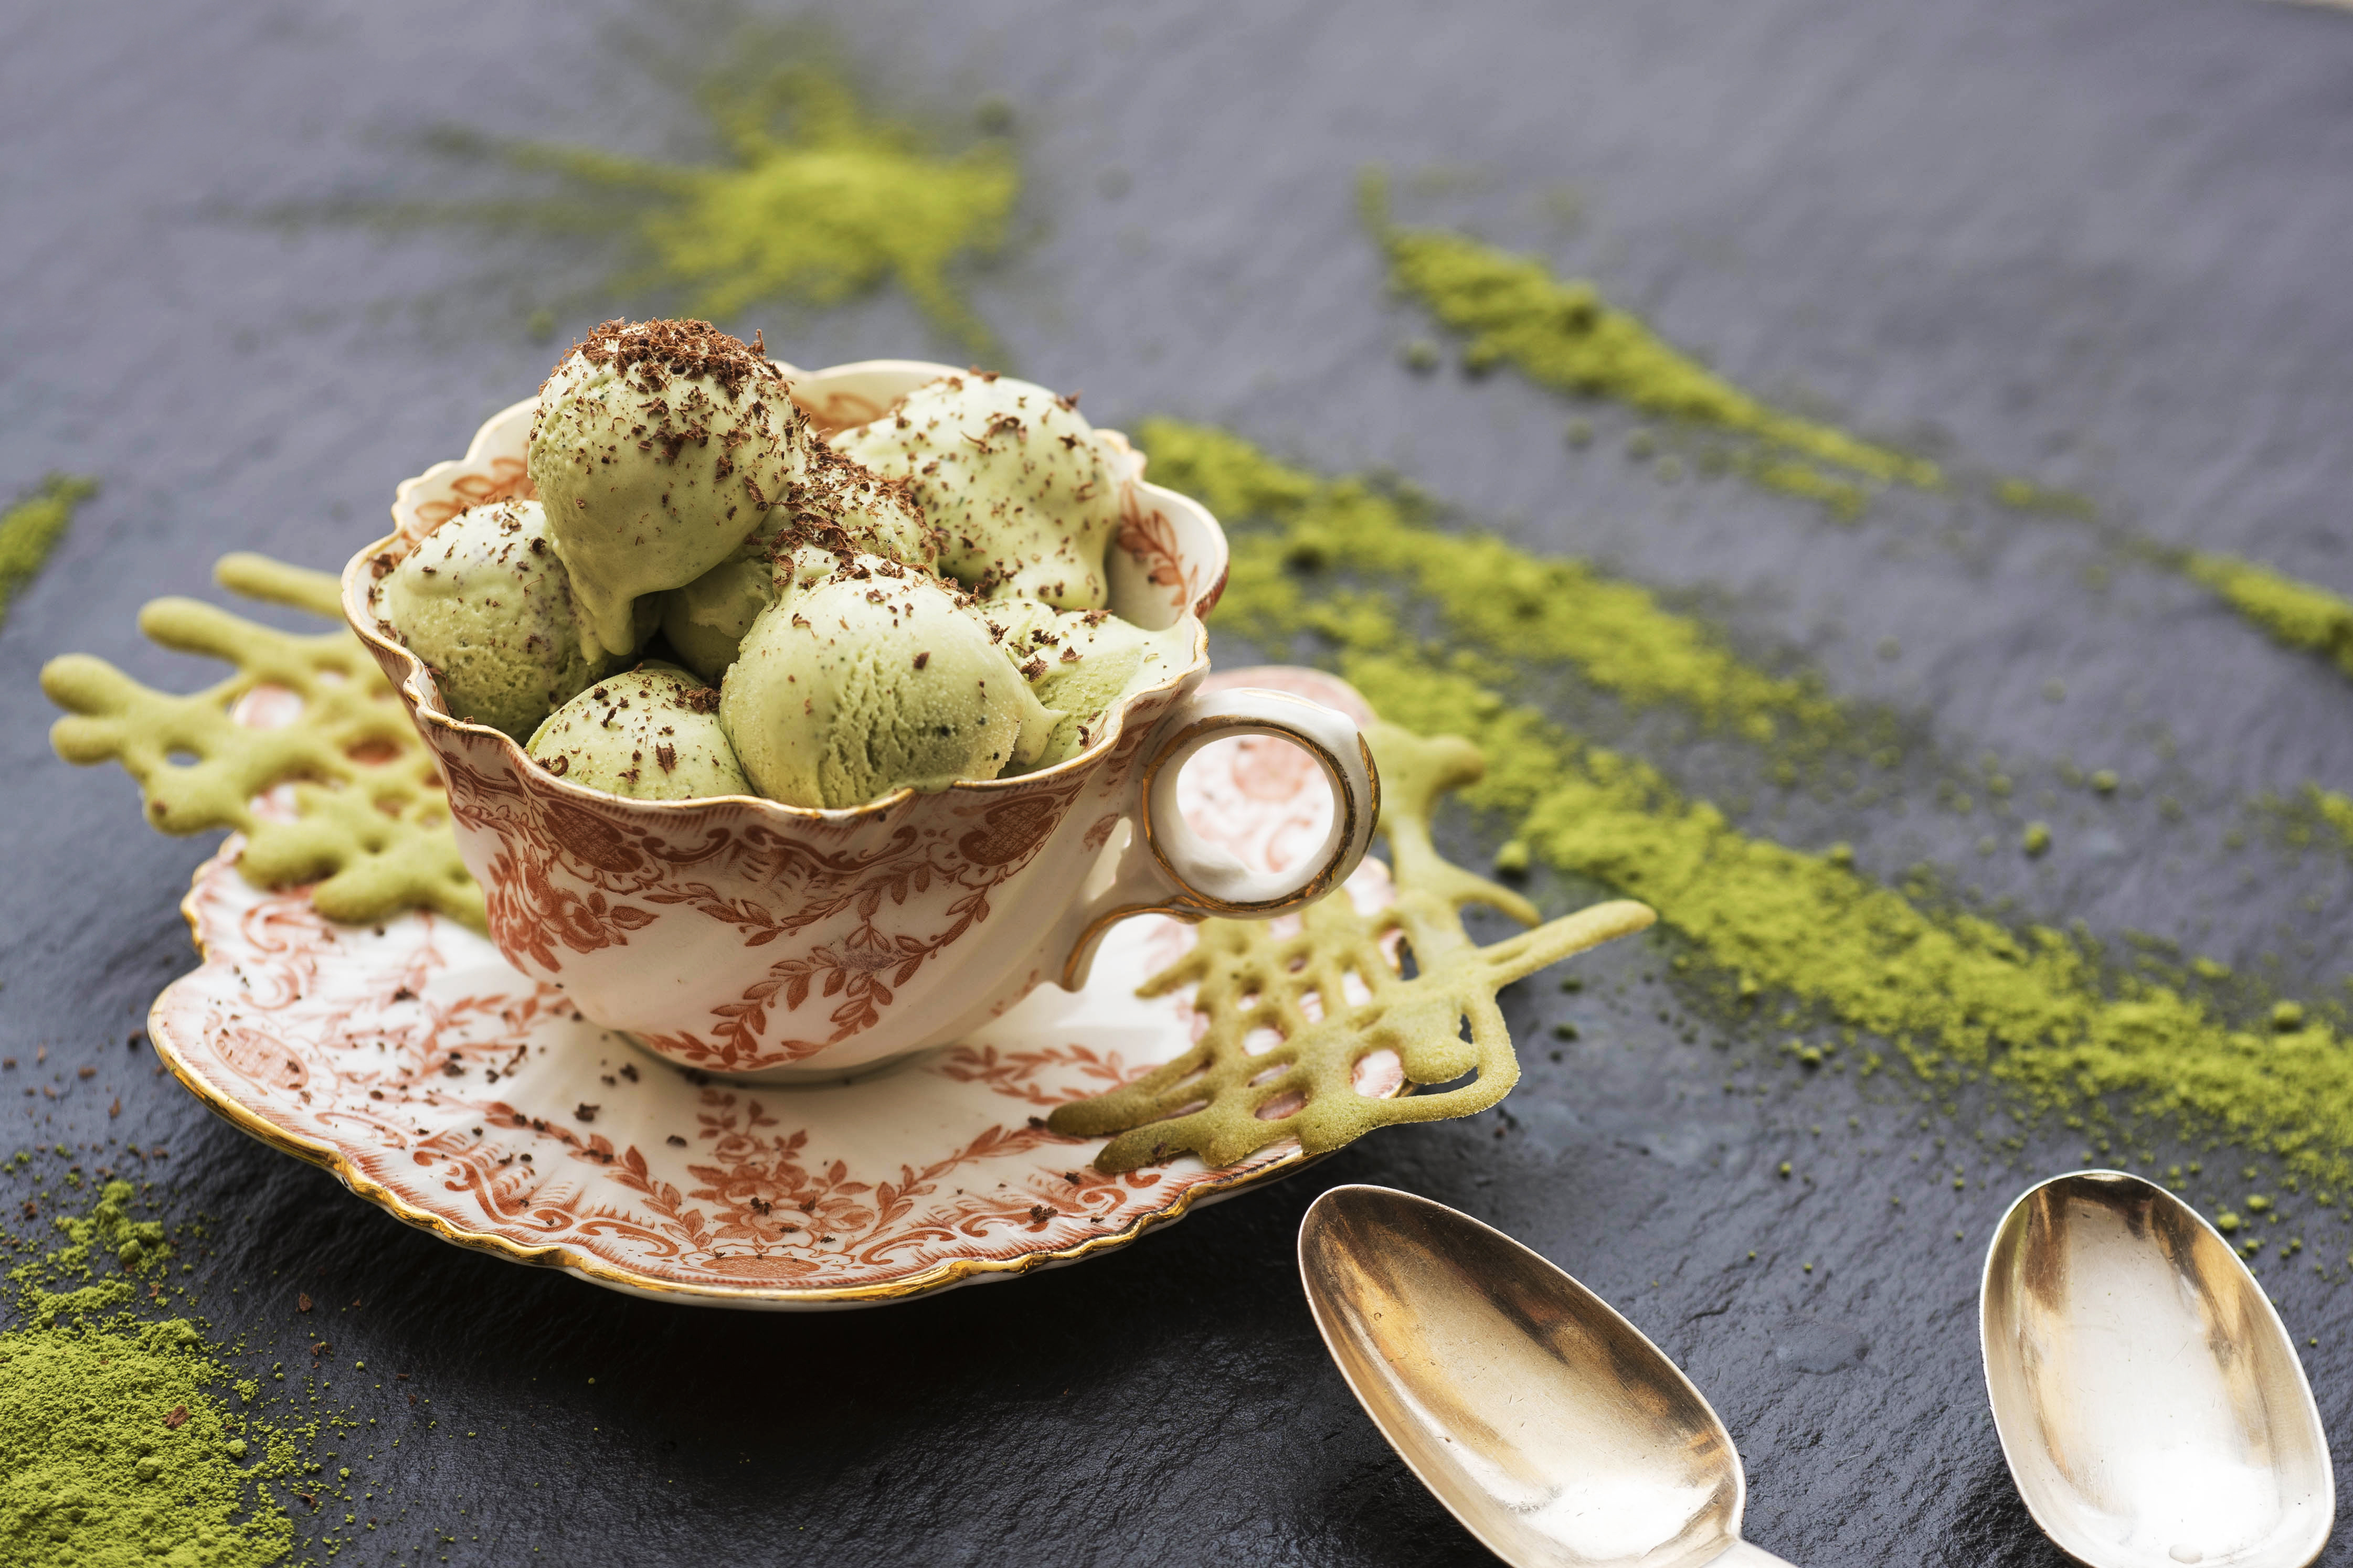 Matcha and White Chocolate Ice Cream | Willie's CacaoWillie's Cacao